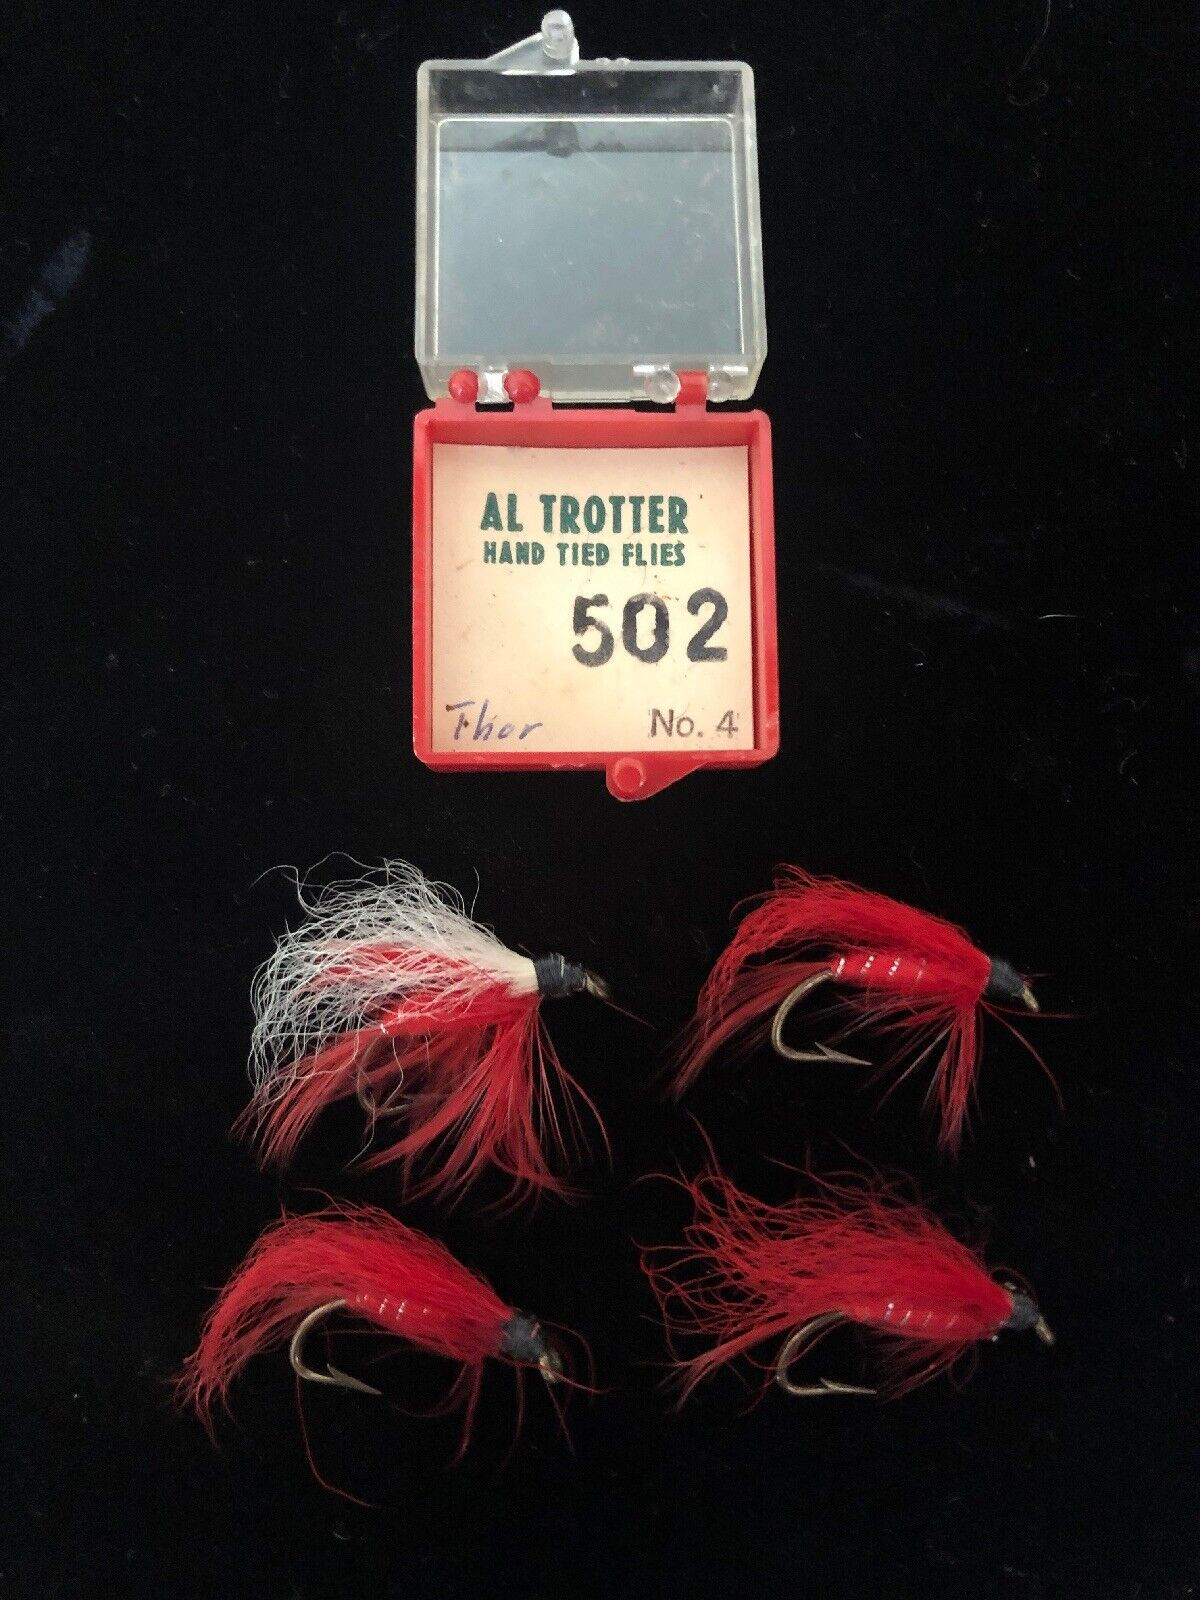 Original Extremely Rare Flies Tied By Al Trotter Thor No. 4 rot